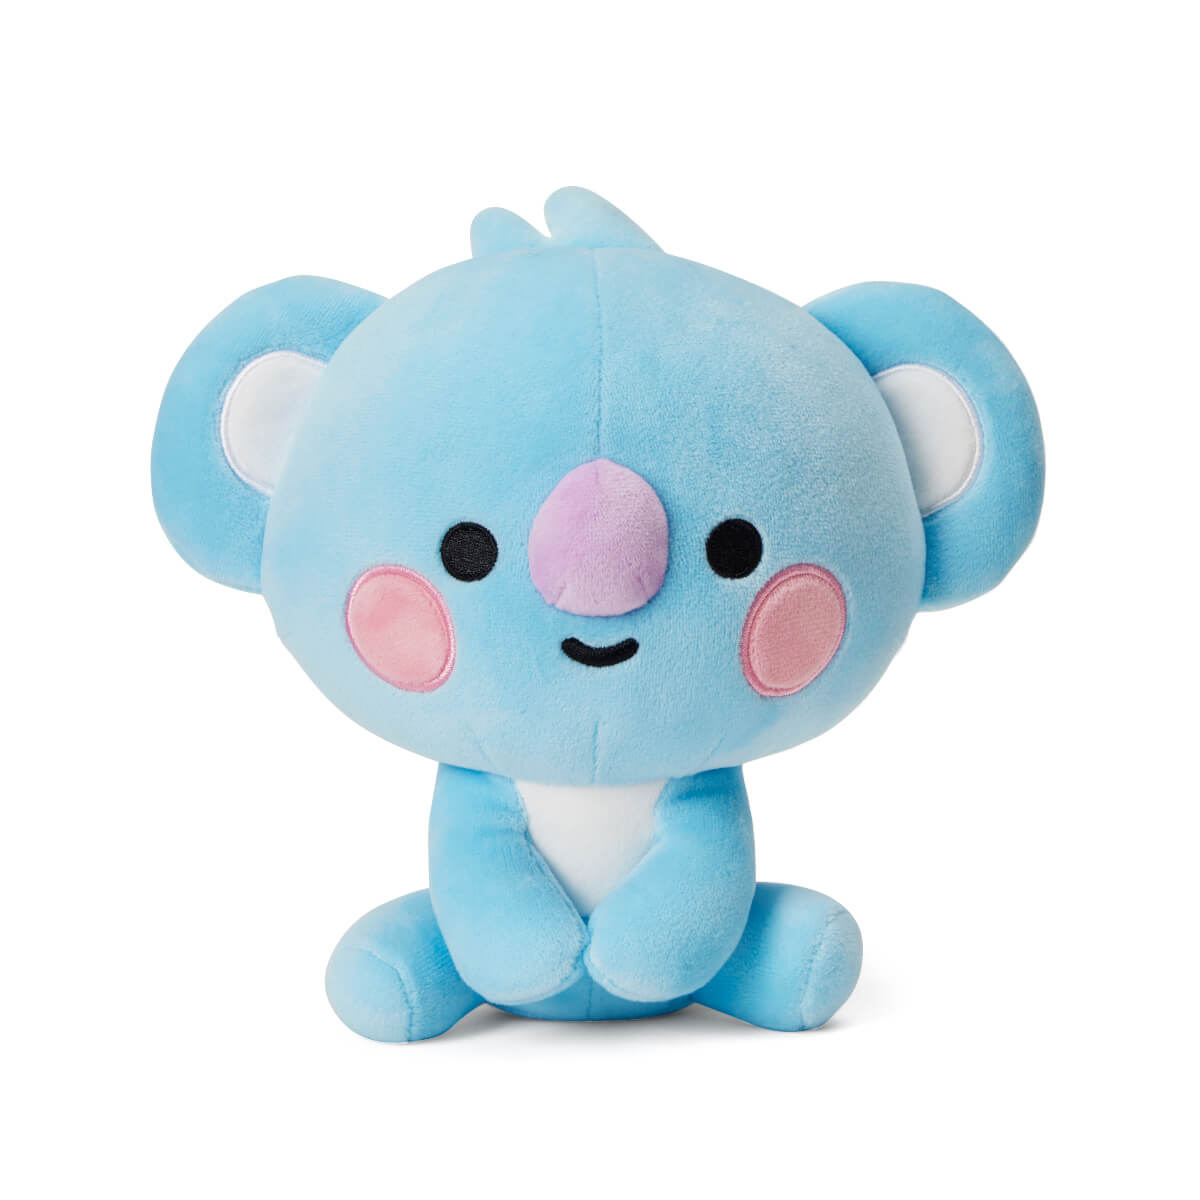 BT21 KOYA Baby Sitting Doll 7.9 inch